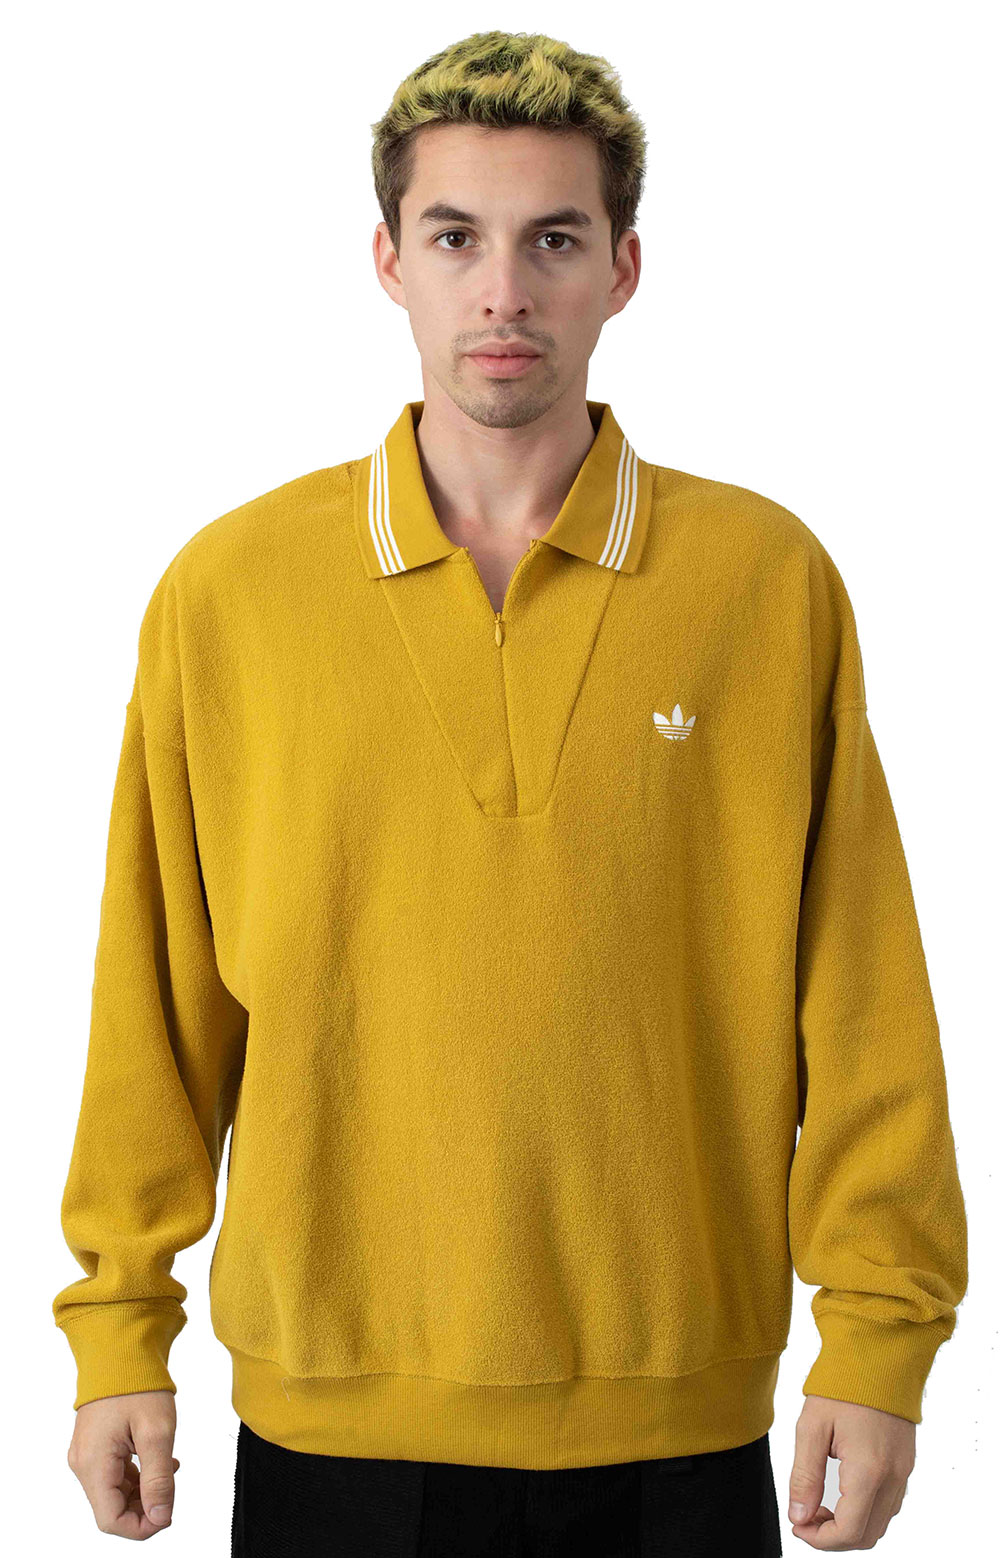 Bouclette L/S Shirt - Spice Yellow